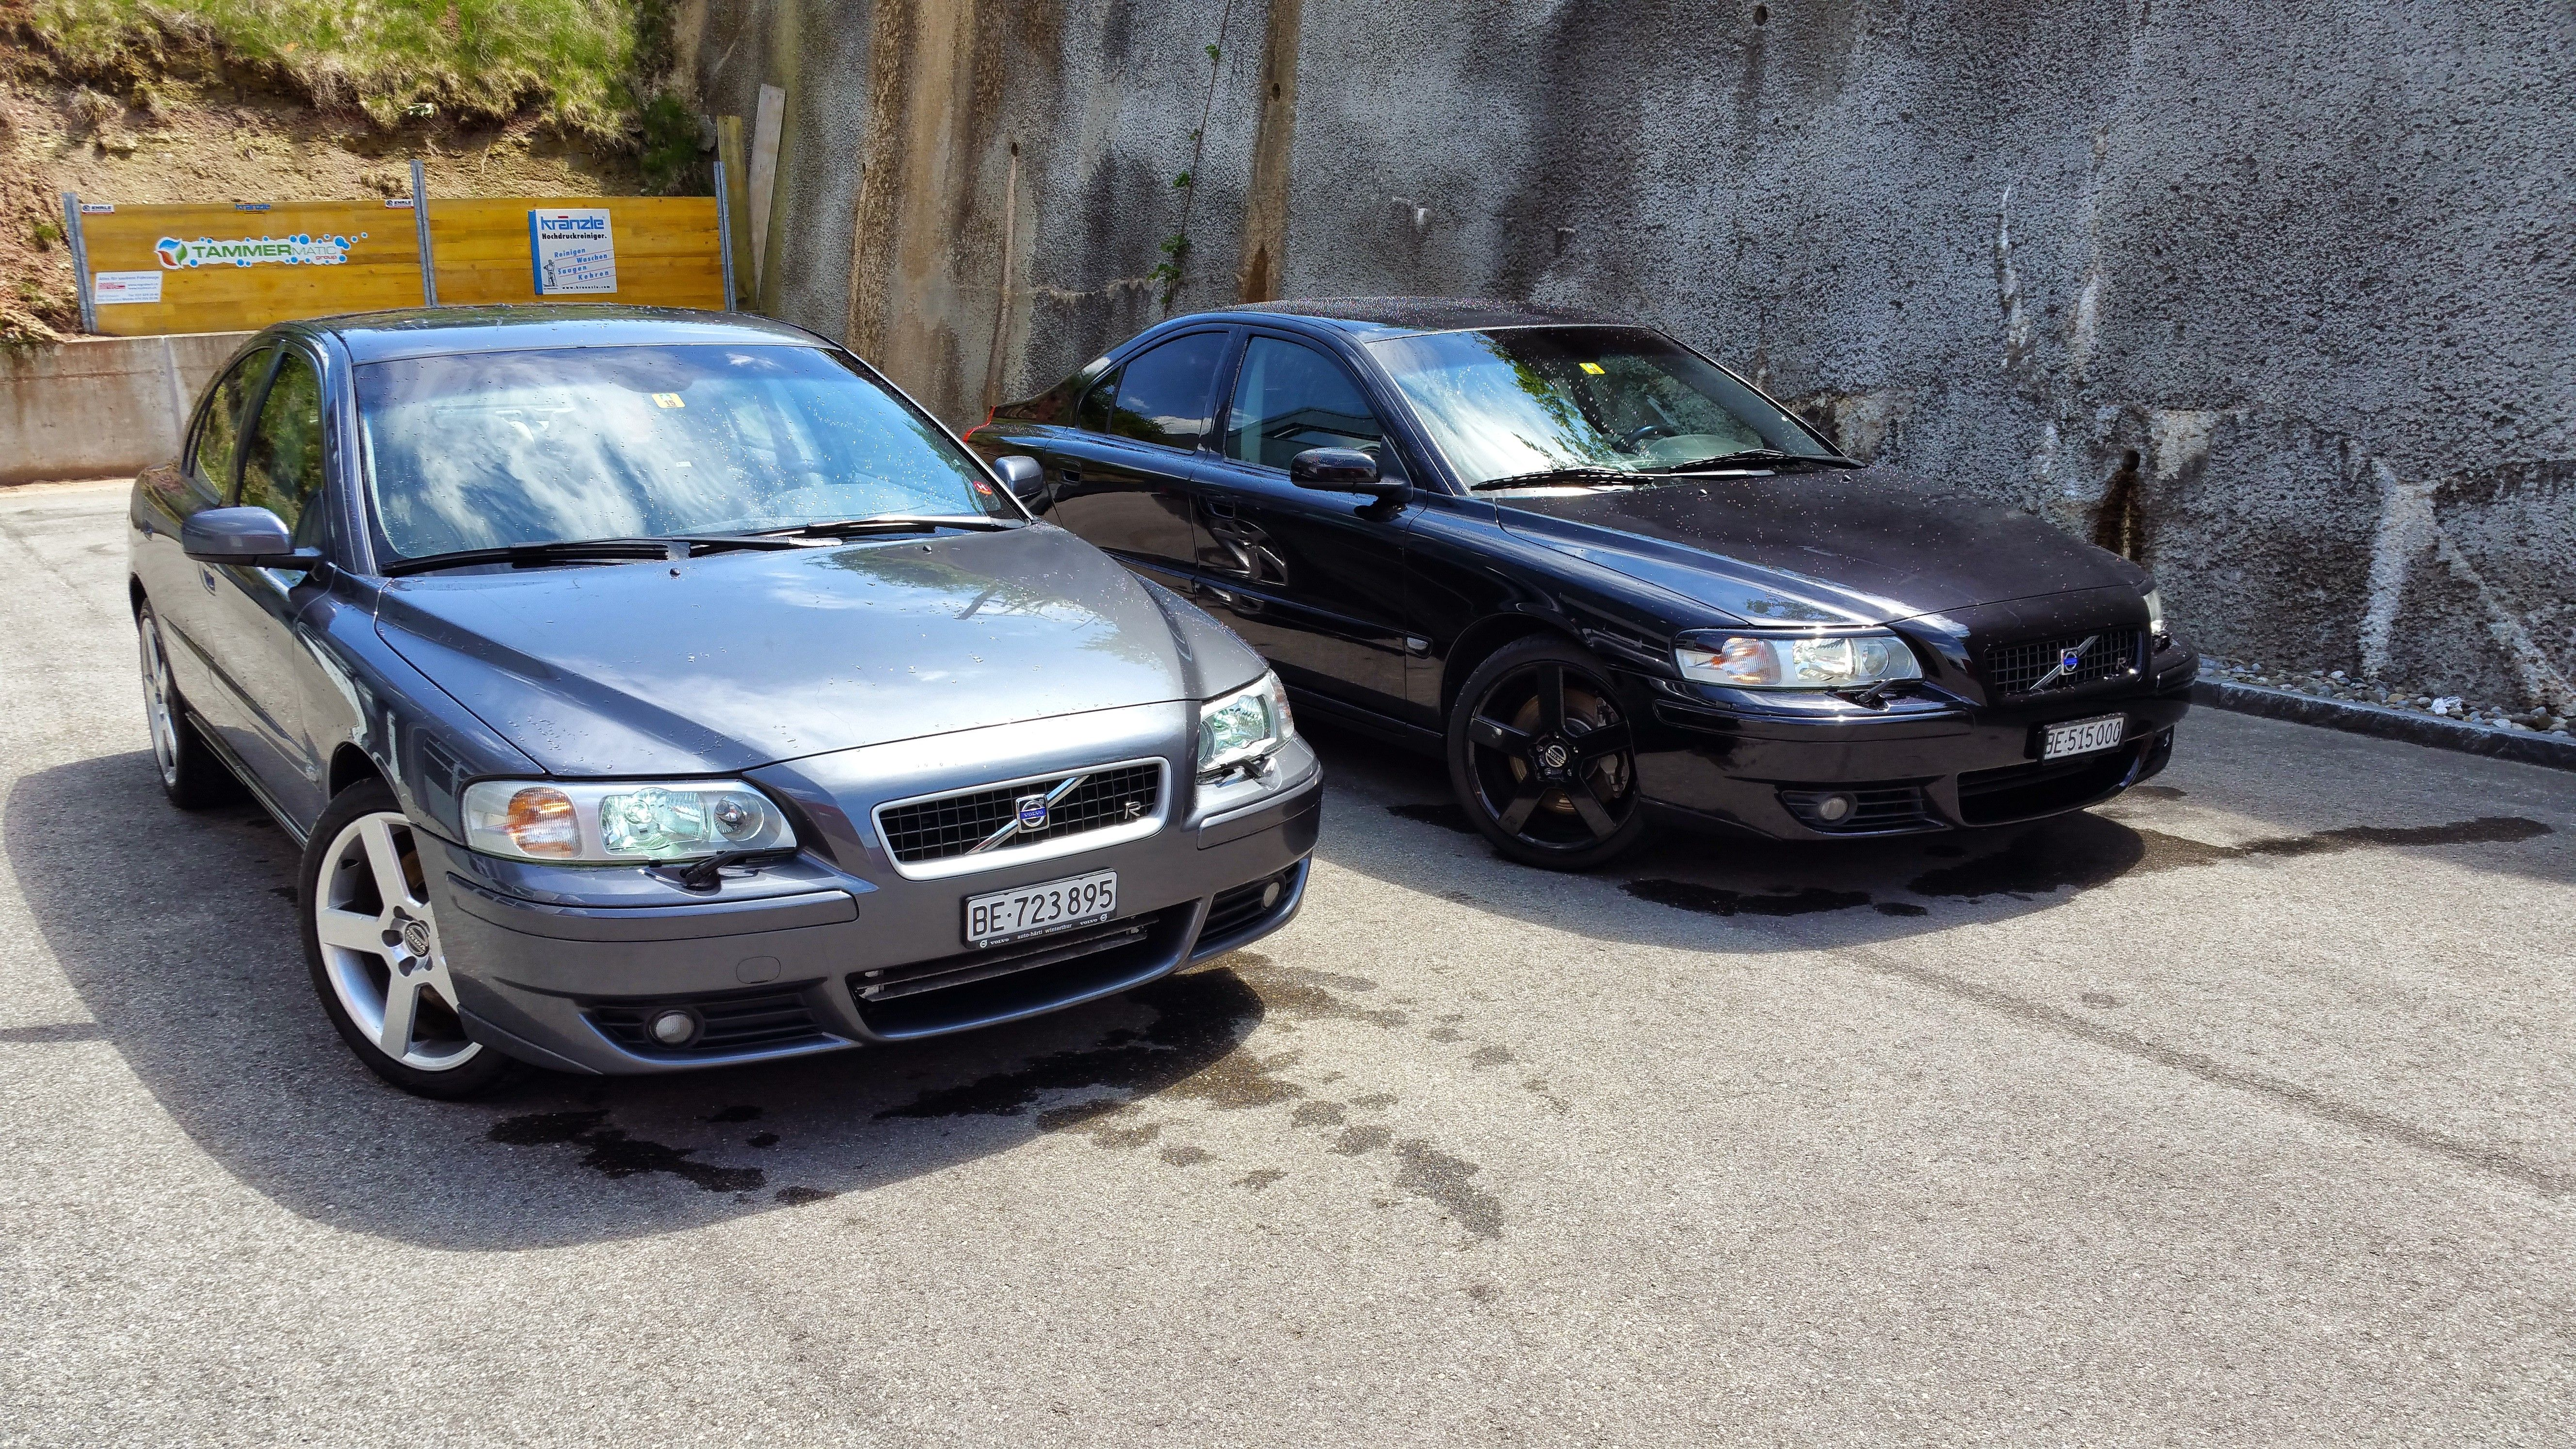 S60r silver volvo s60r s60r pinterest volvo volvo s60 and cars